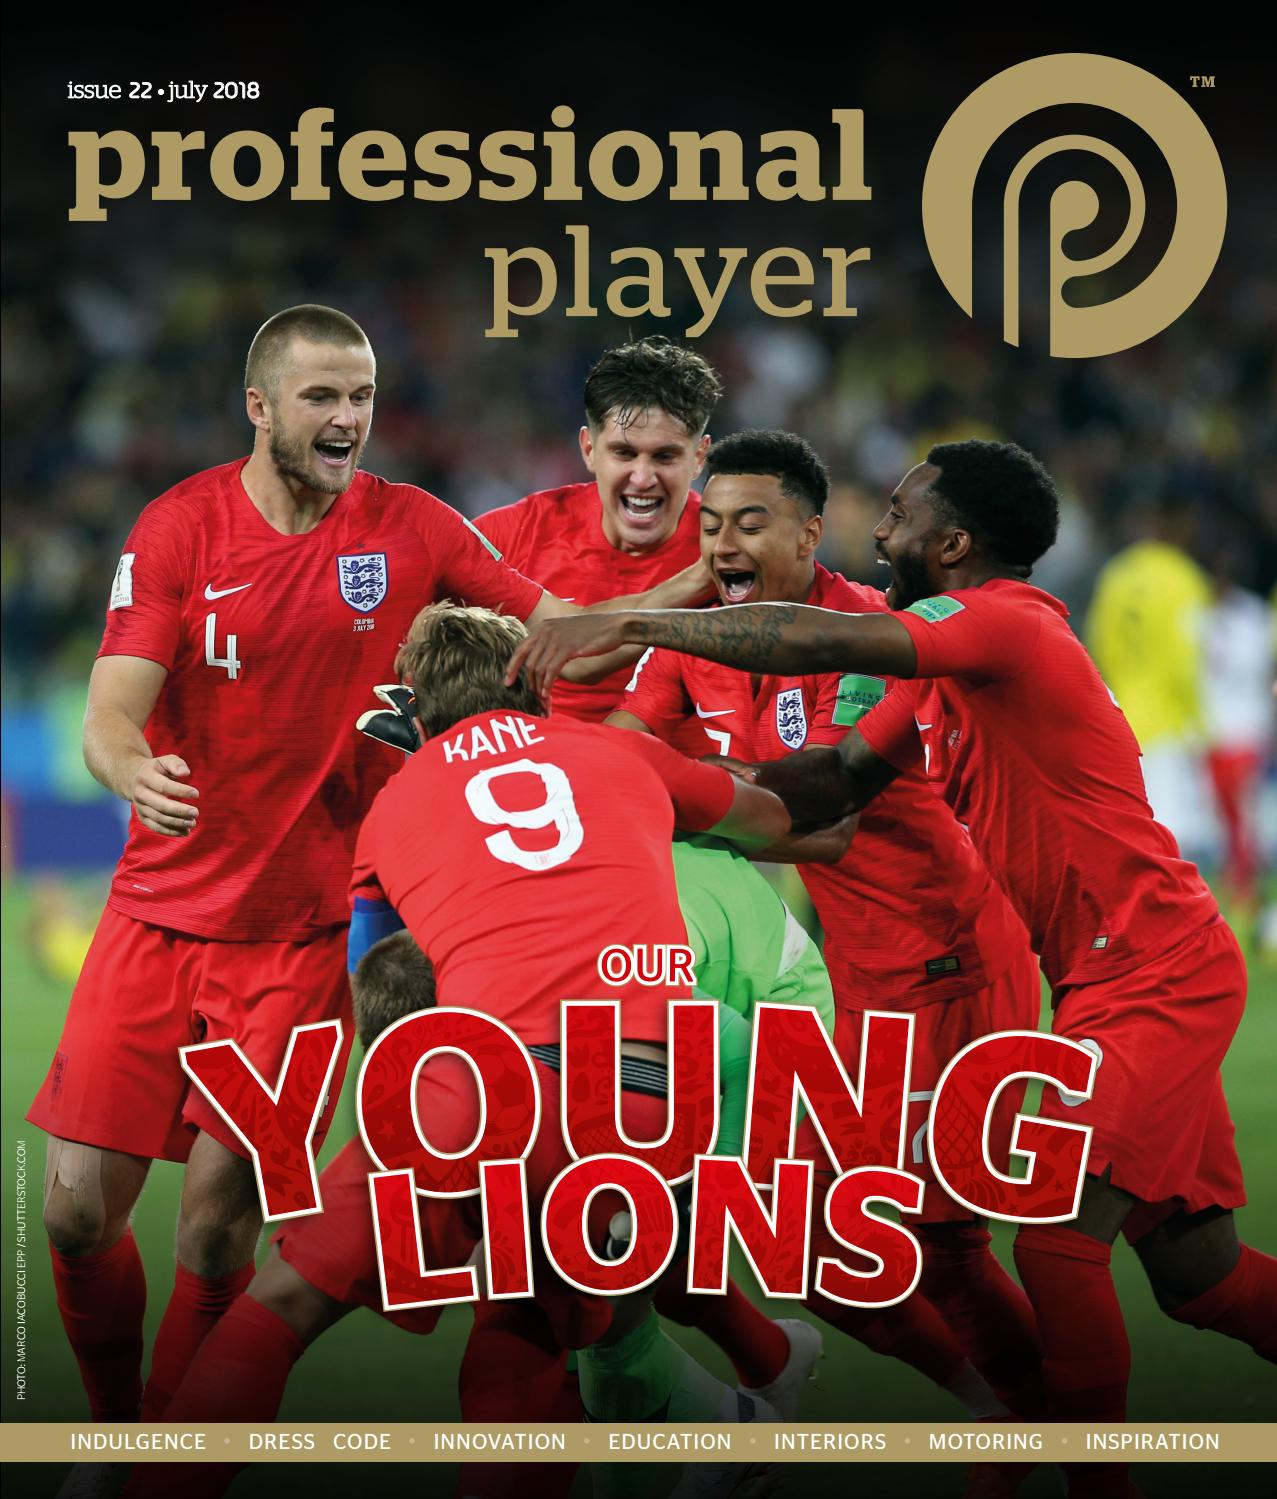 PACK 3 RED FOOTBALLERS FOR EMBELLISHMENTS FOR CARDS